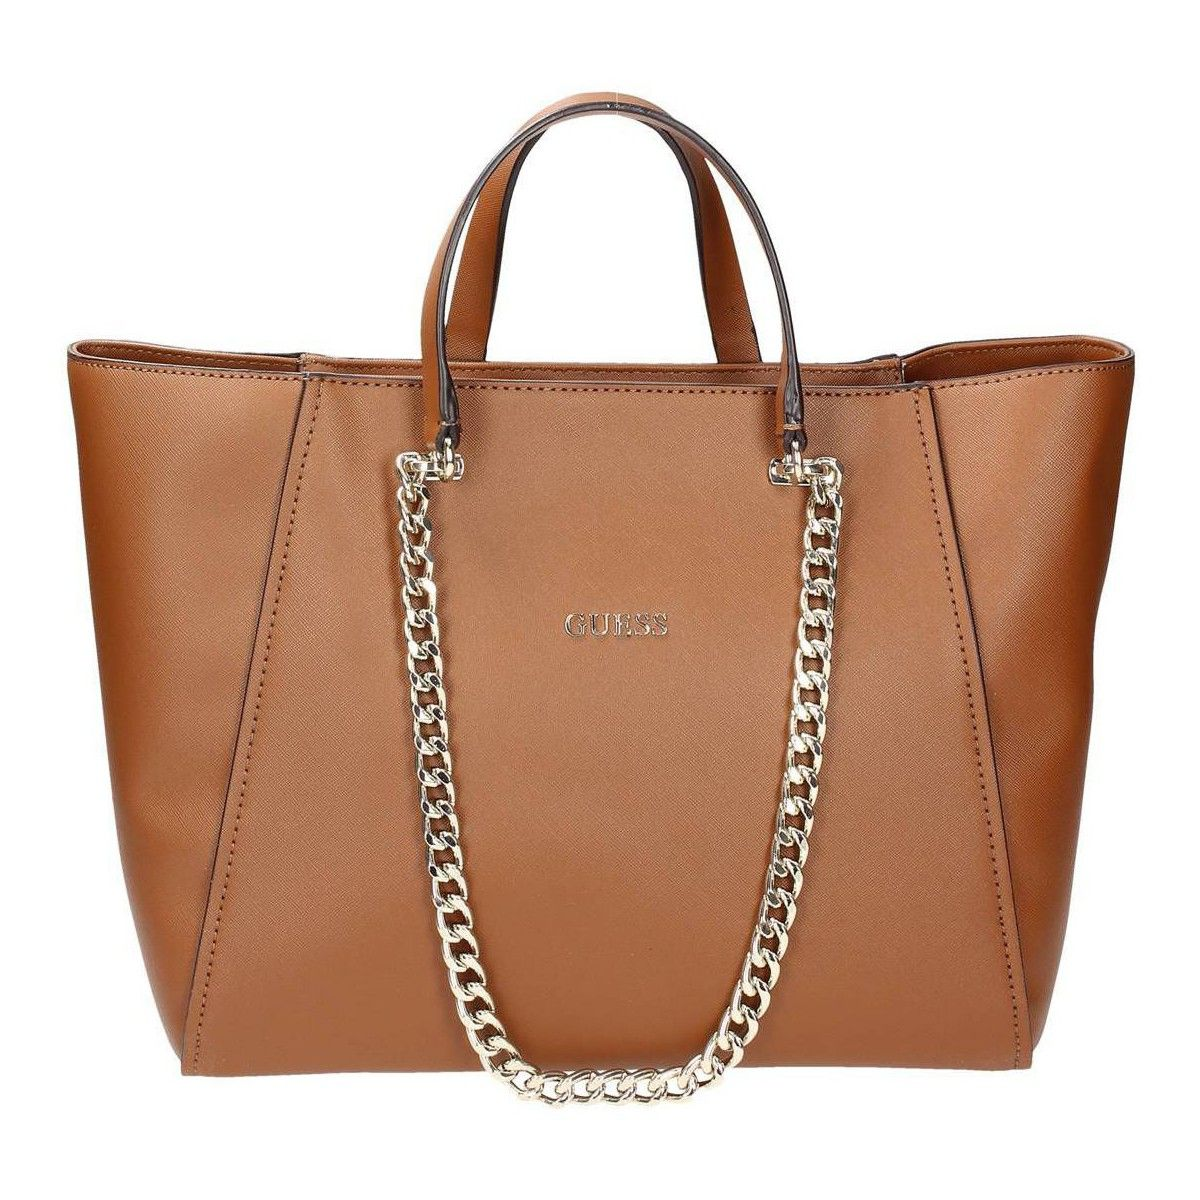 Borsette Guess VG504223 Shopper Donna Sintetico Marrone Disponibile in  misura donna. Unica. . Borse 5ee6930565d6